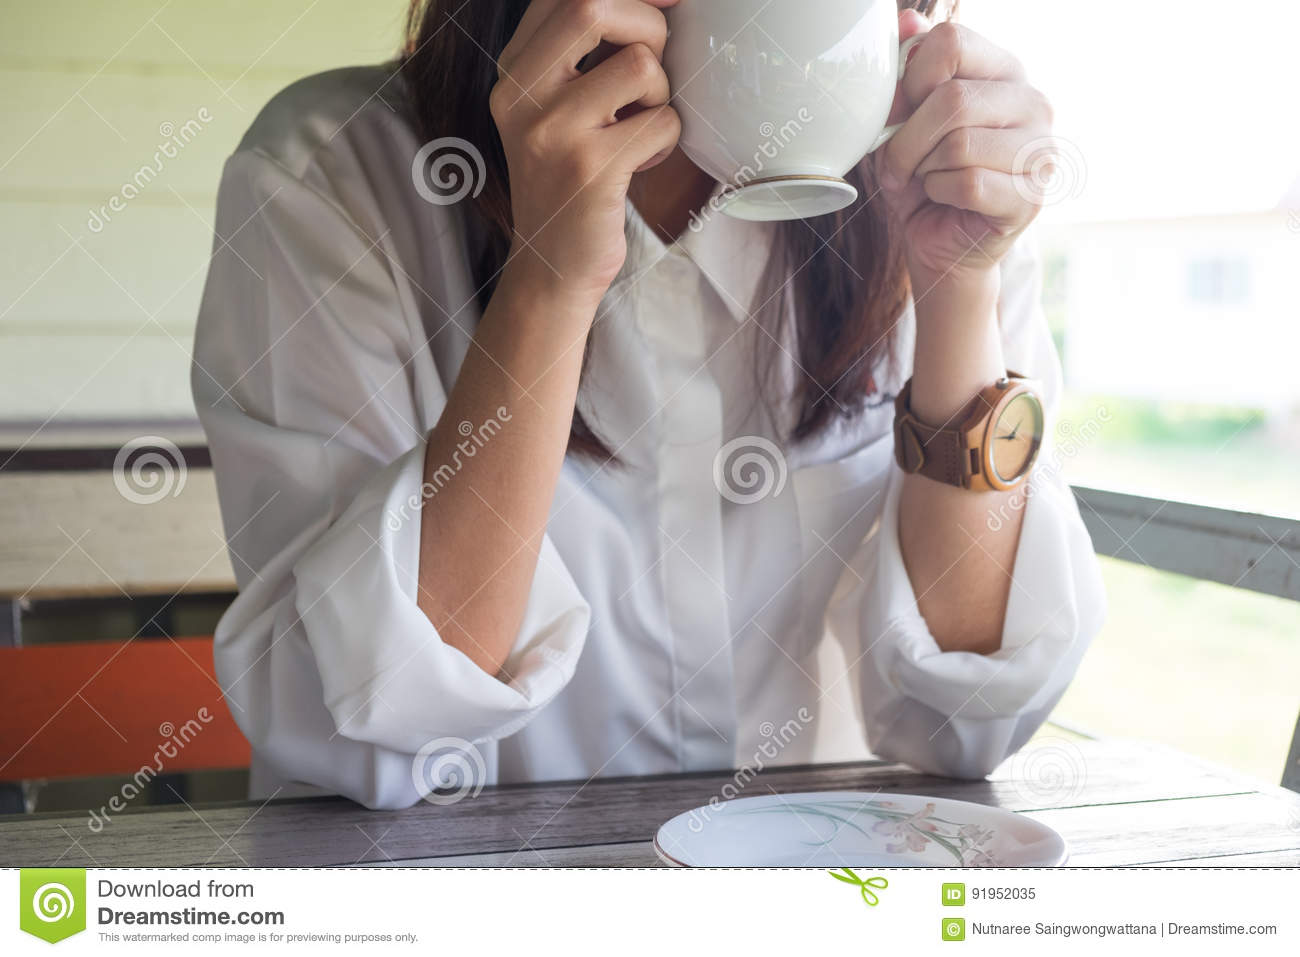 Young woman equip white shirt holding coffee cup and drinking co